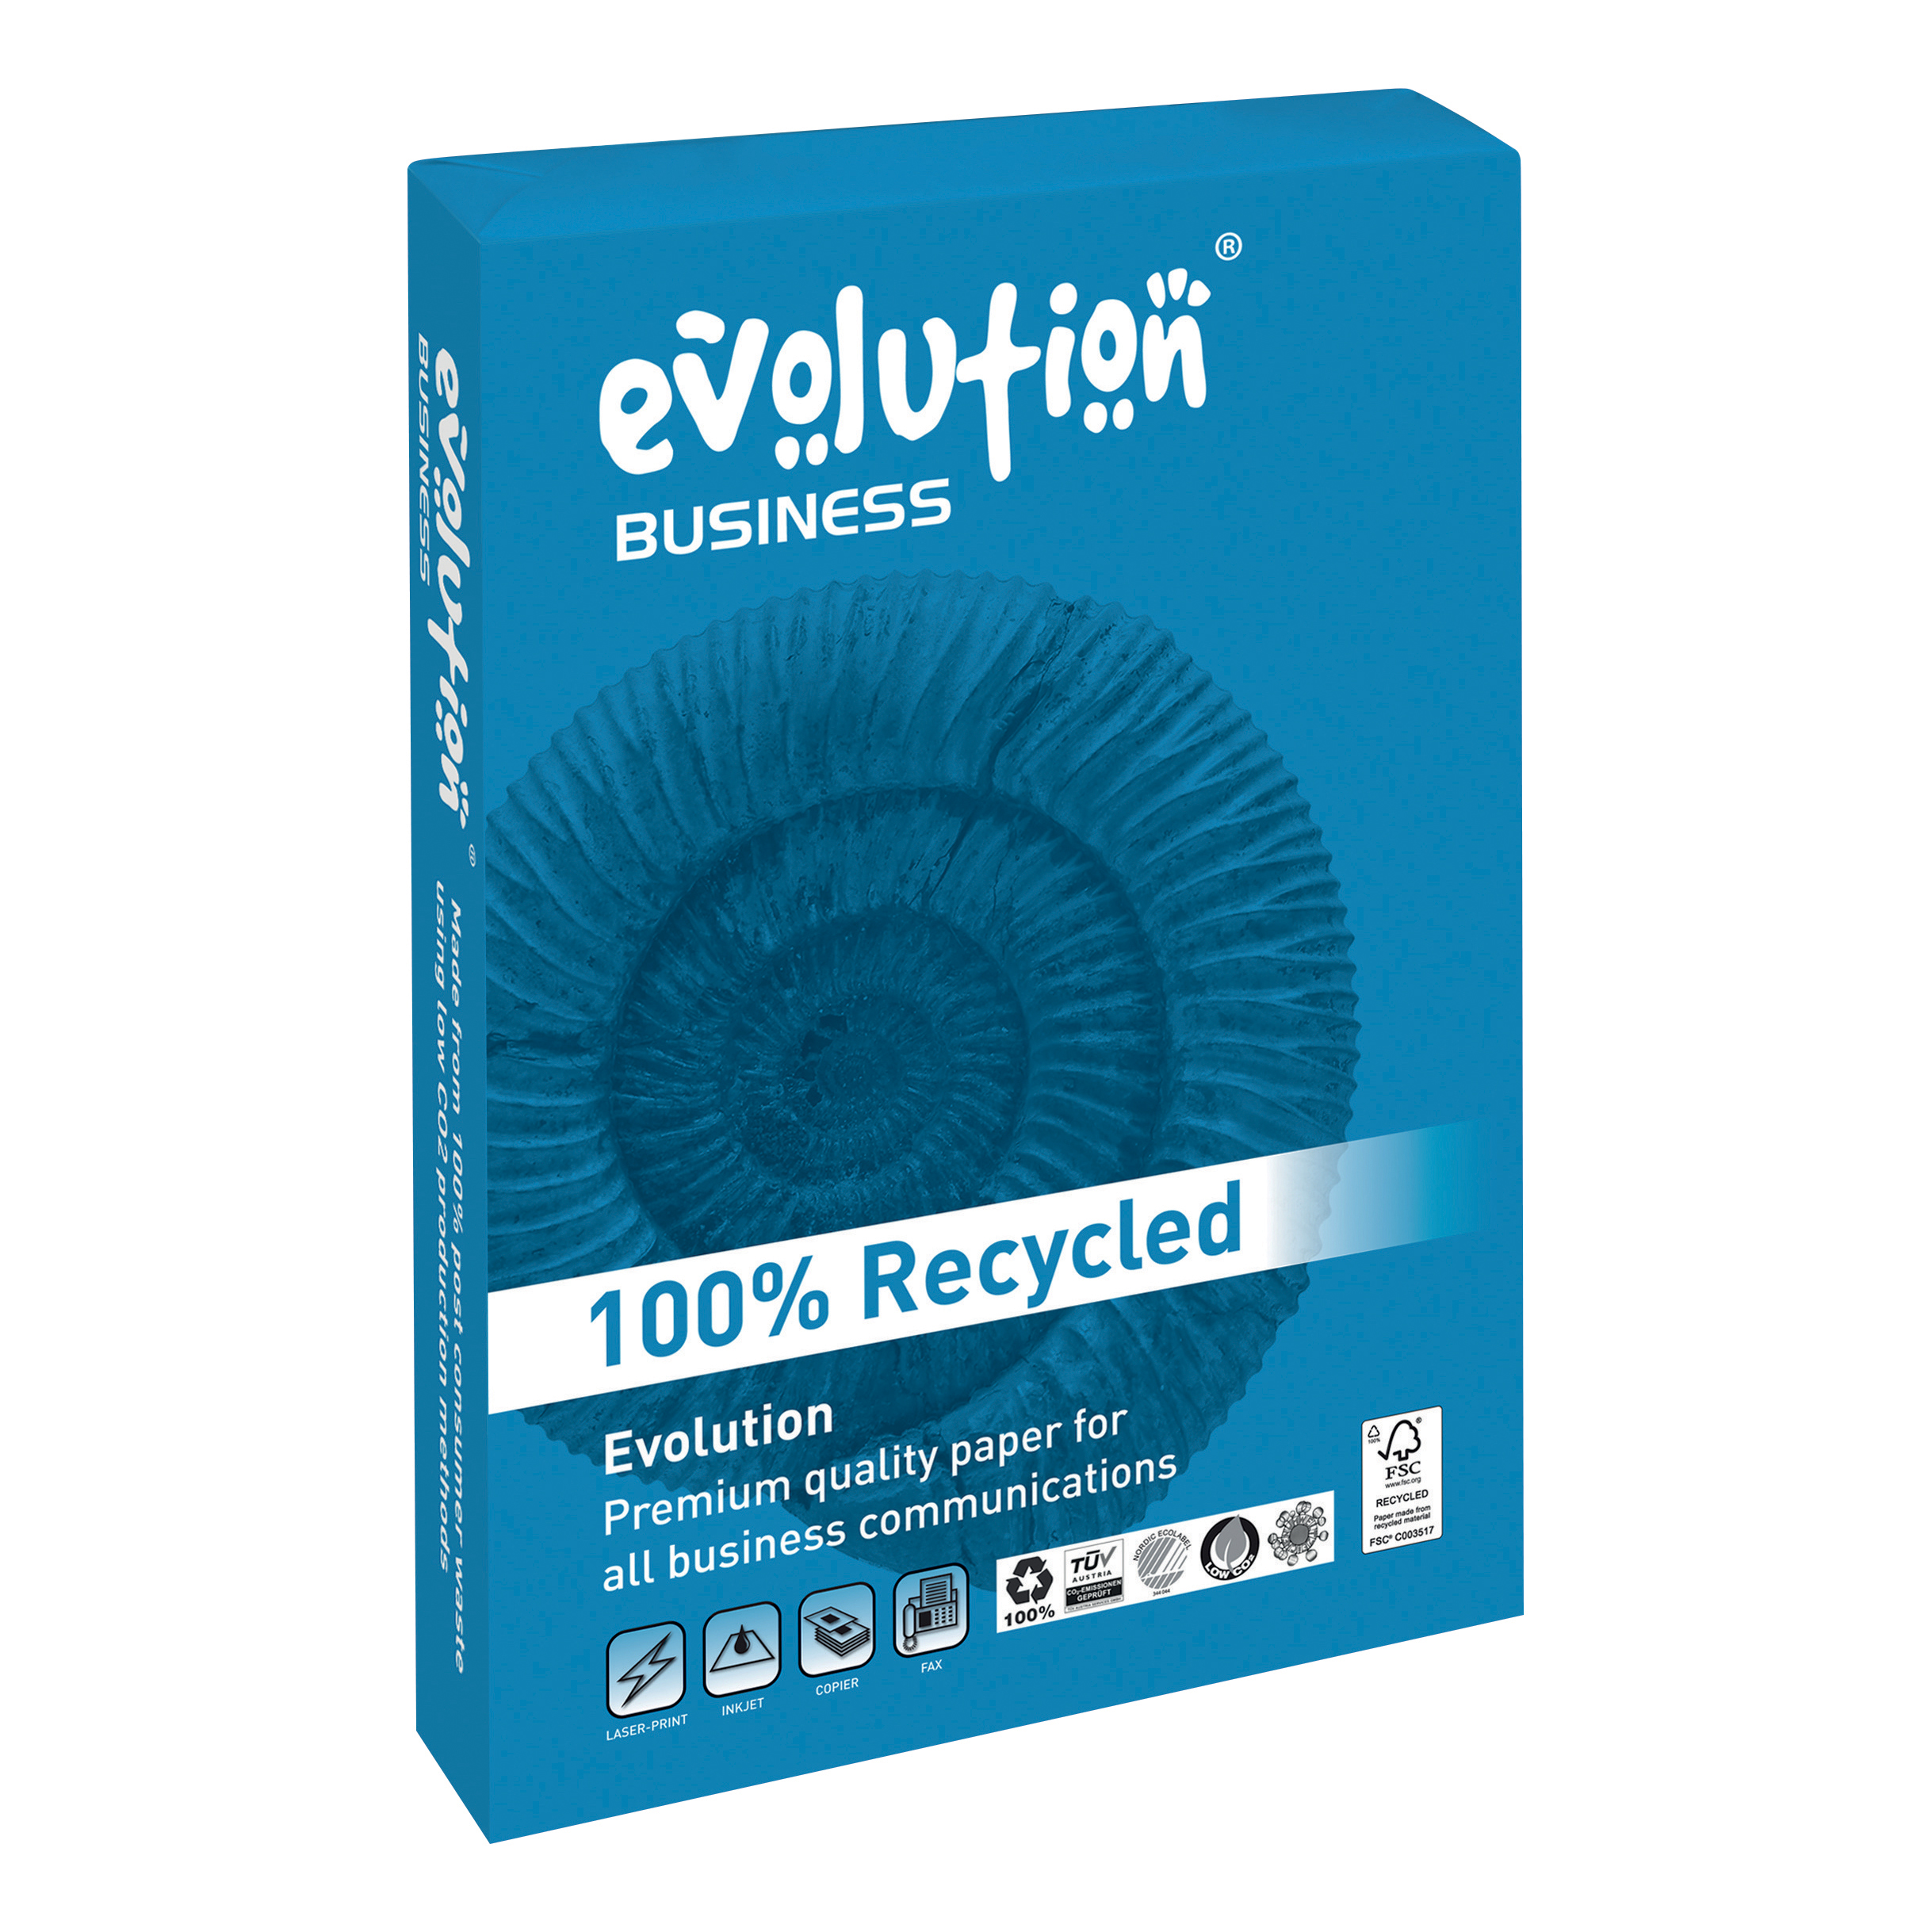 Evolution Business Paper FSC Recycled Ream-wrapped 80gsm A4 White Ref EVBU2180 500 Sheets